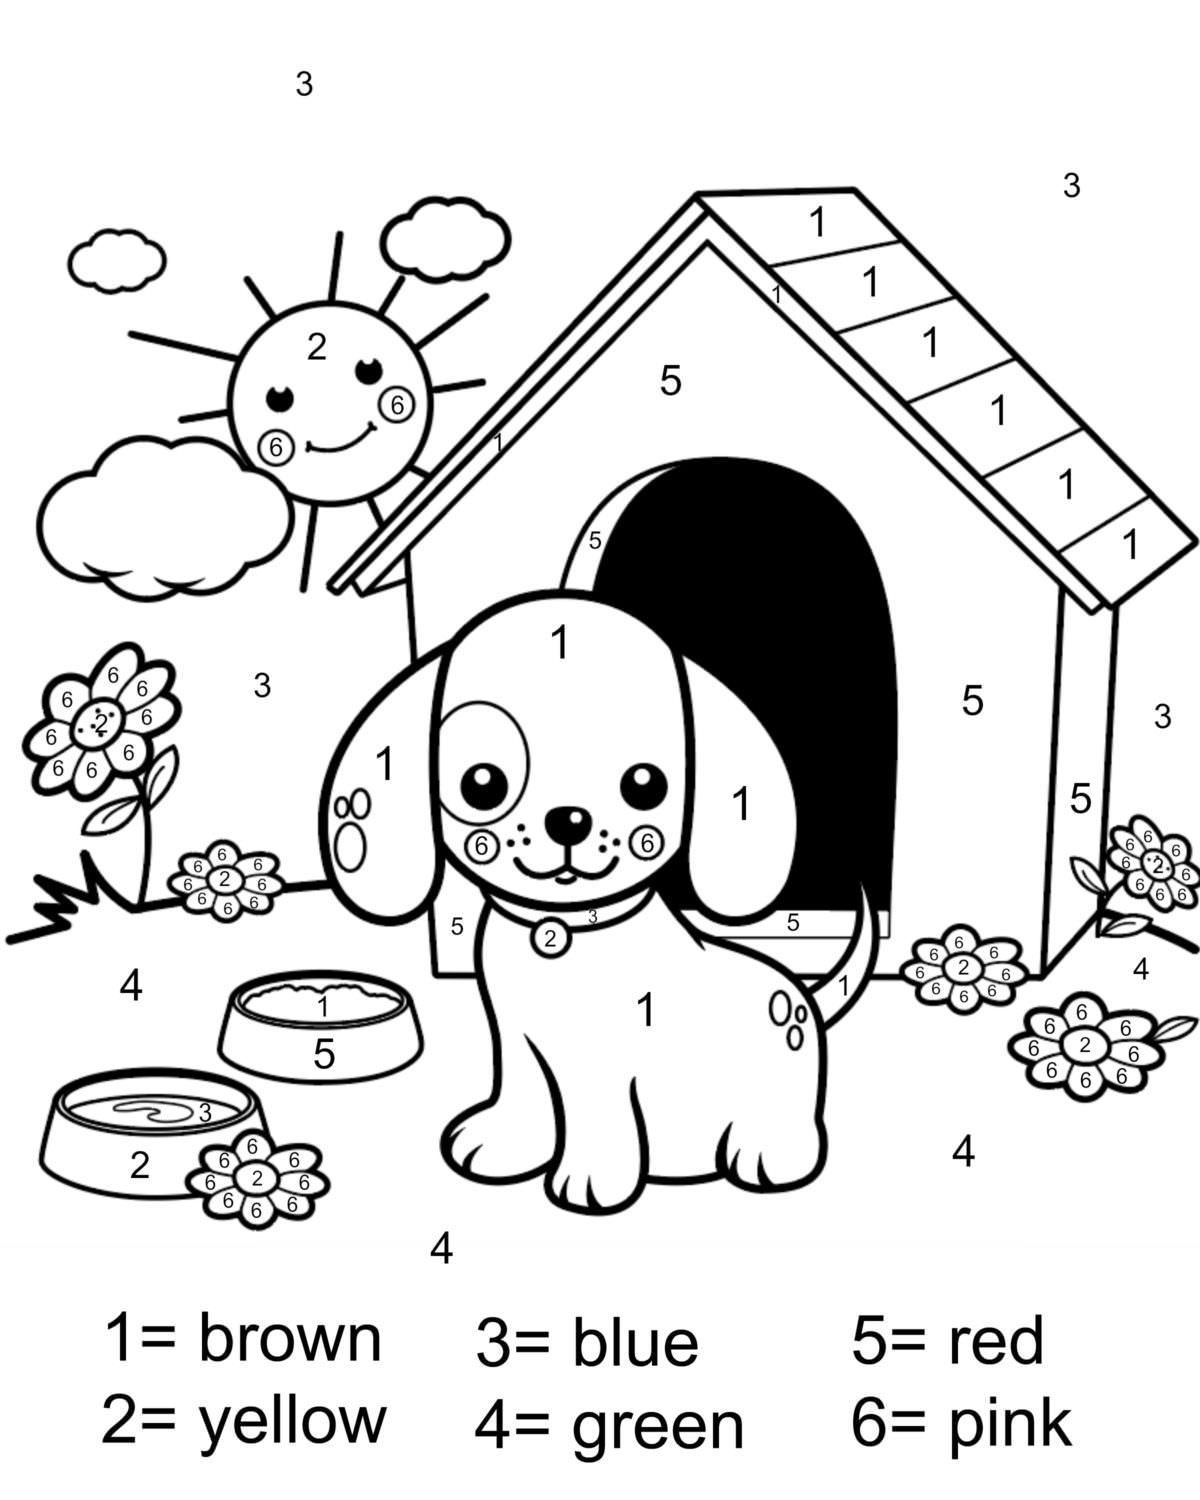 Color by number coloring page free printable my mommy style for Printable color by number pages